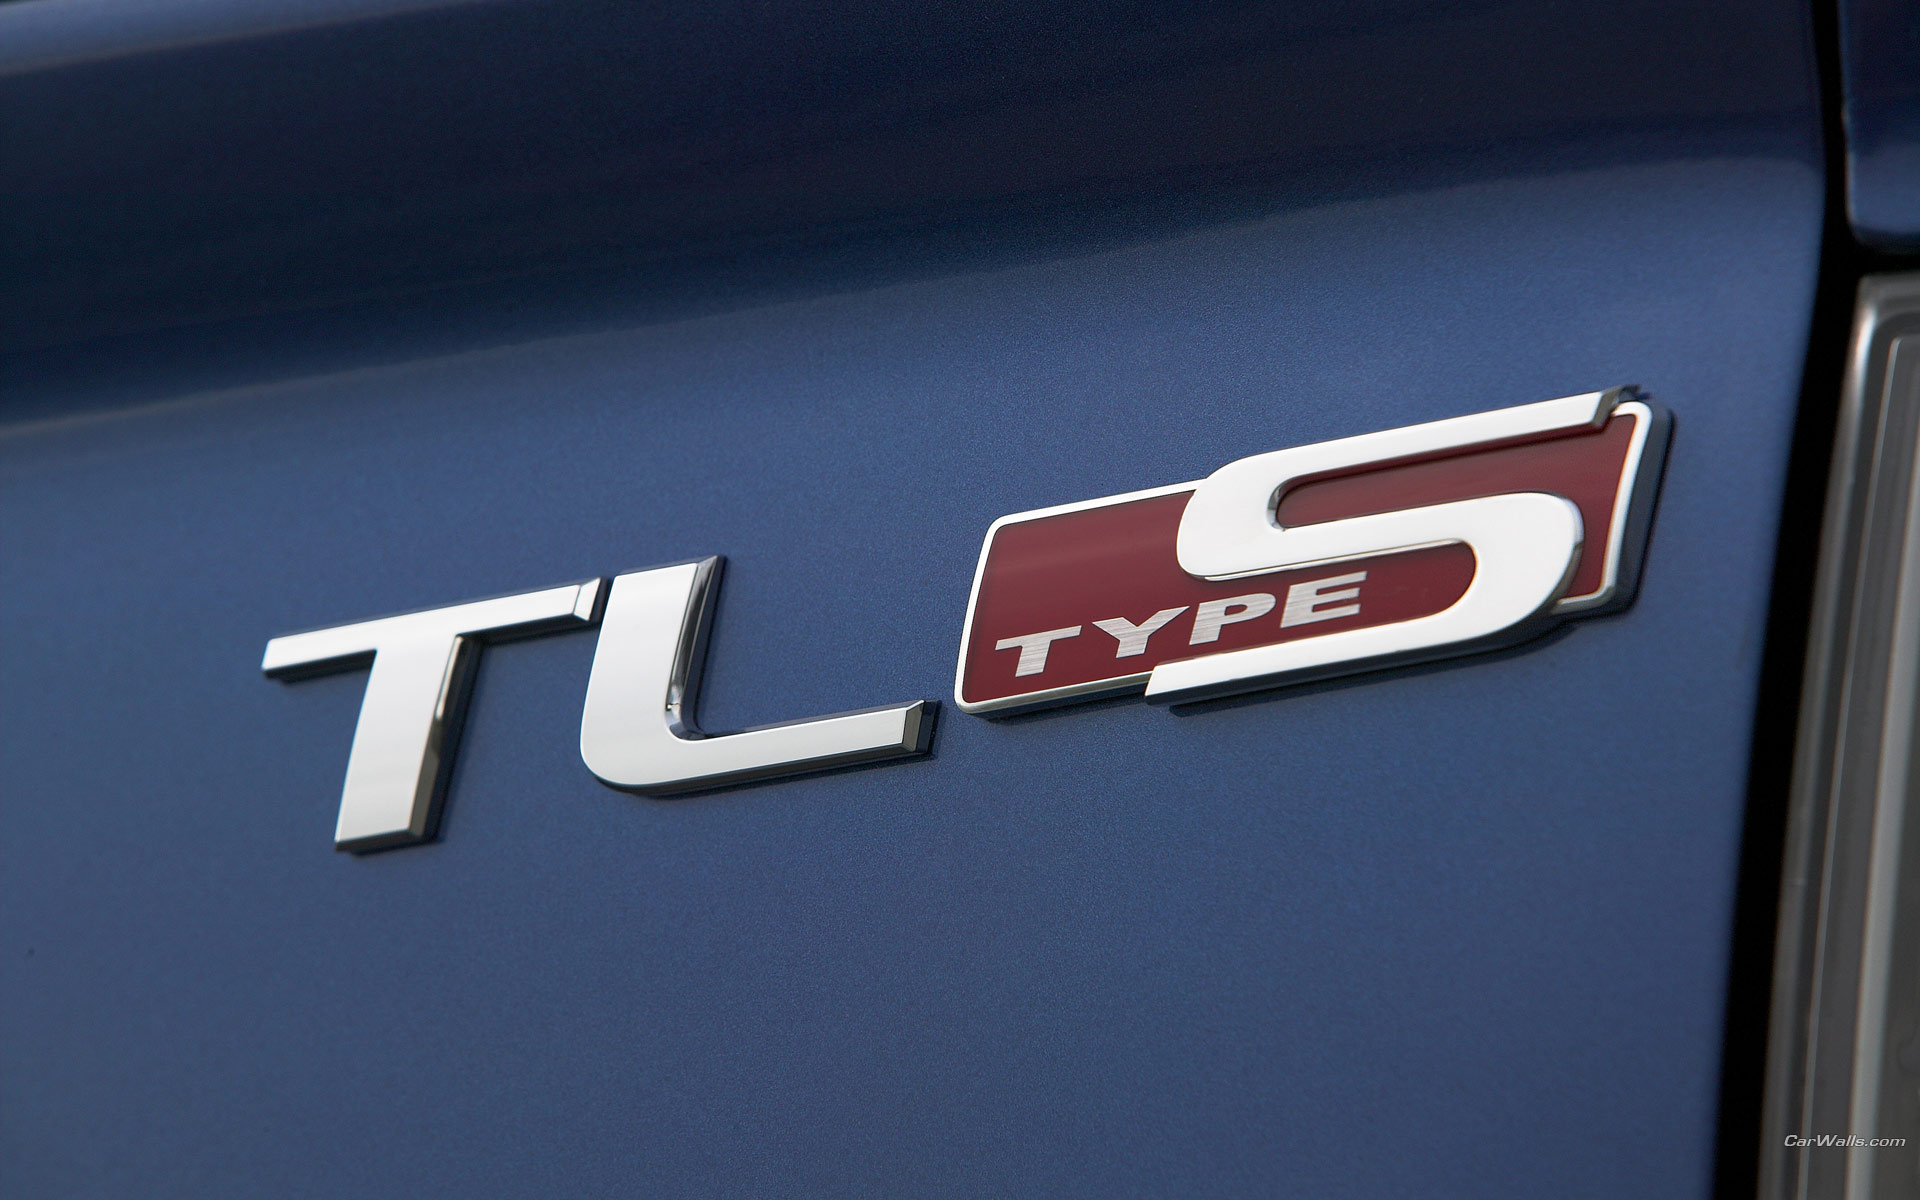 Download full size Acura TL type S logo Acura wallpaper / 1920x1200